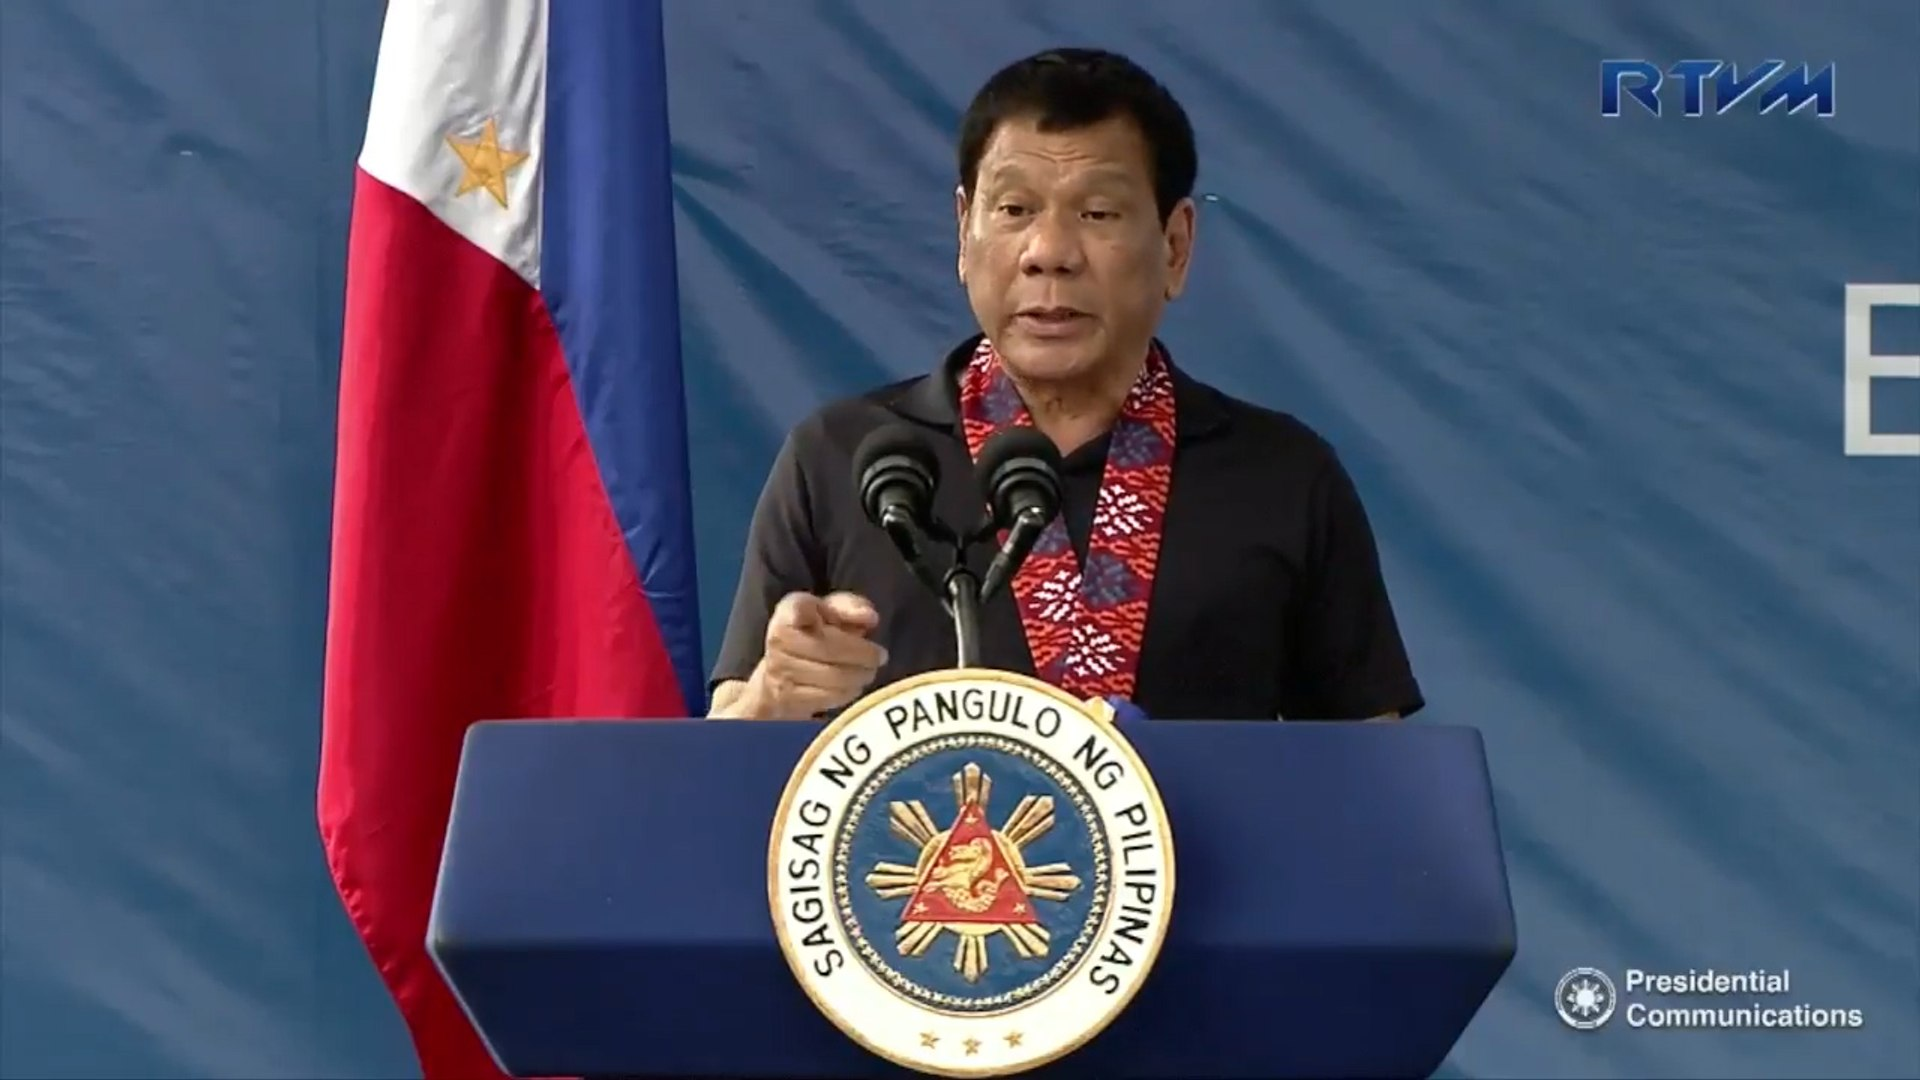 Duterte: it's not my duty to wage war against my own people